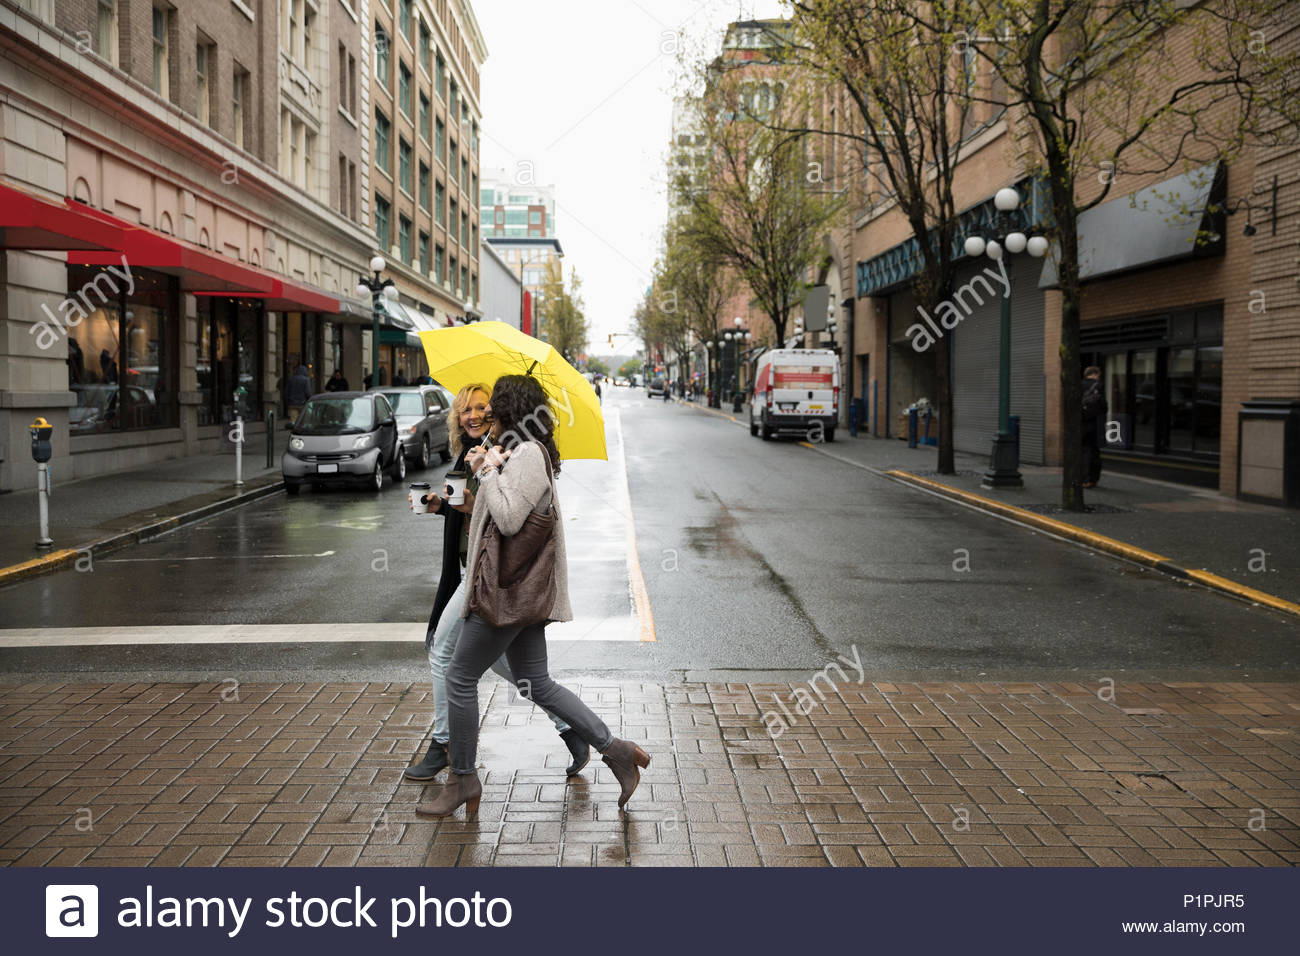 Women friends with yellow umbrella crossing city street - Stock Image